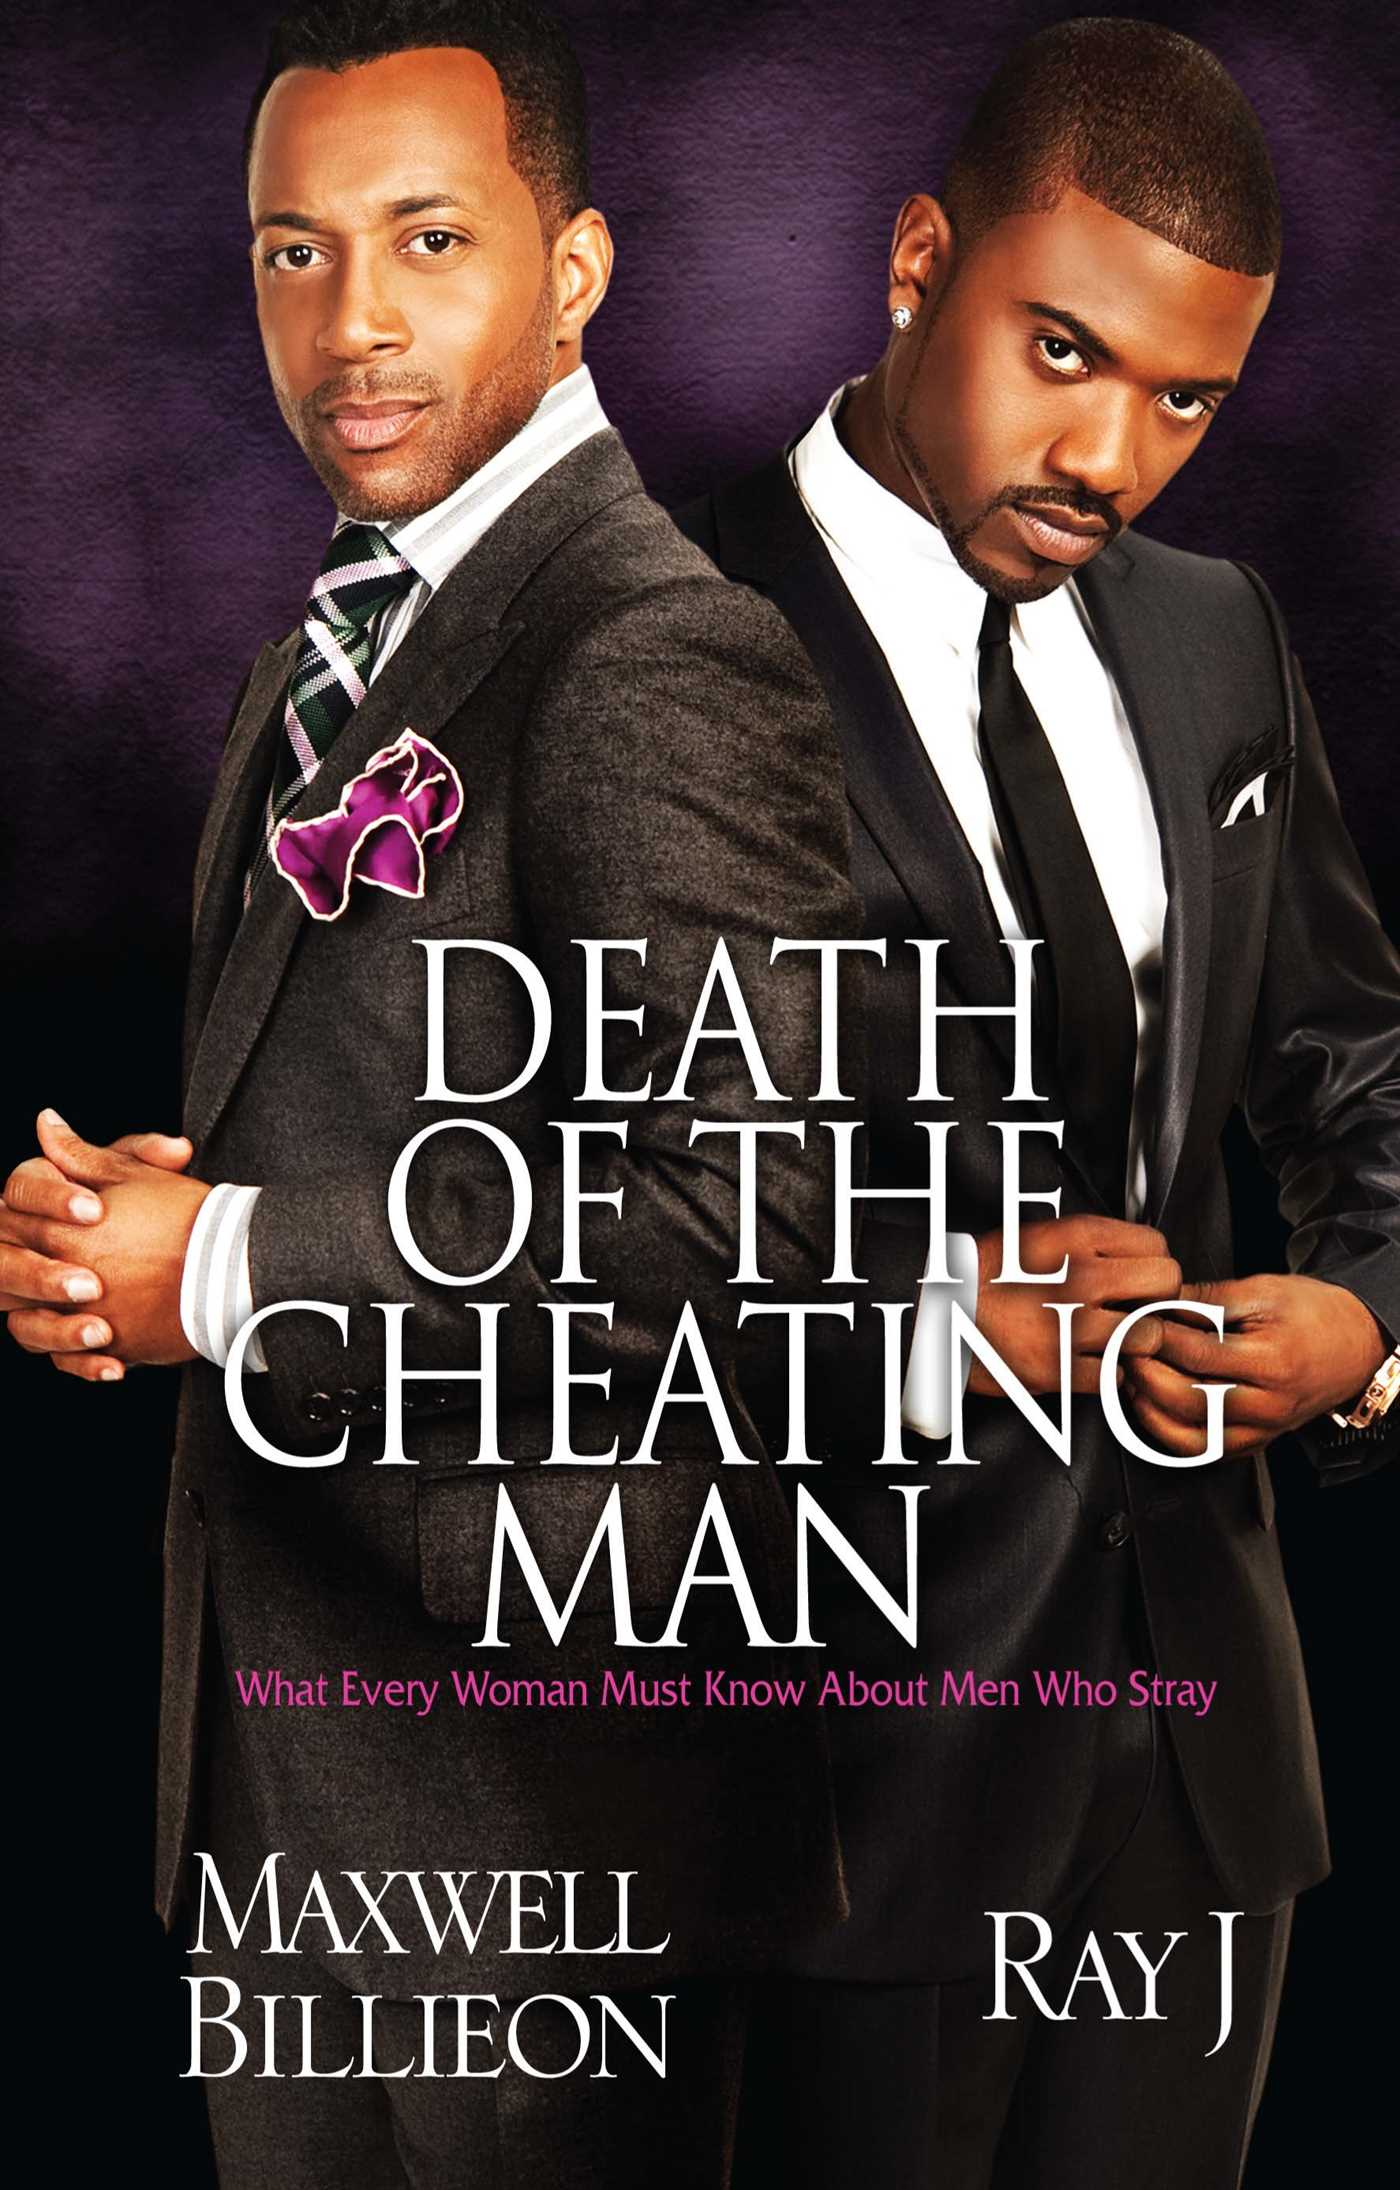 Death-of-the-cheating-man-9781451655254_hr